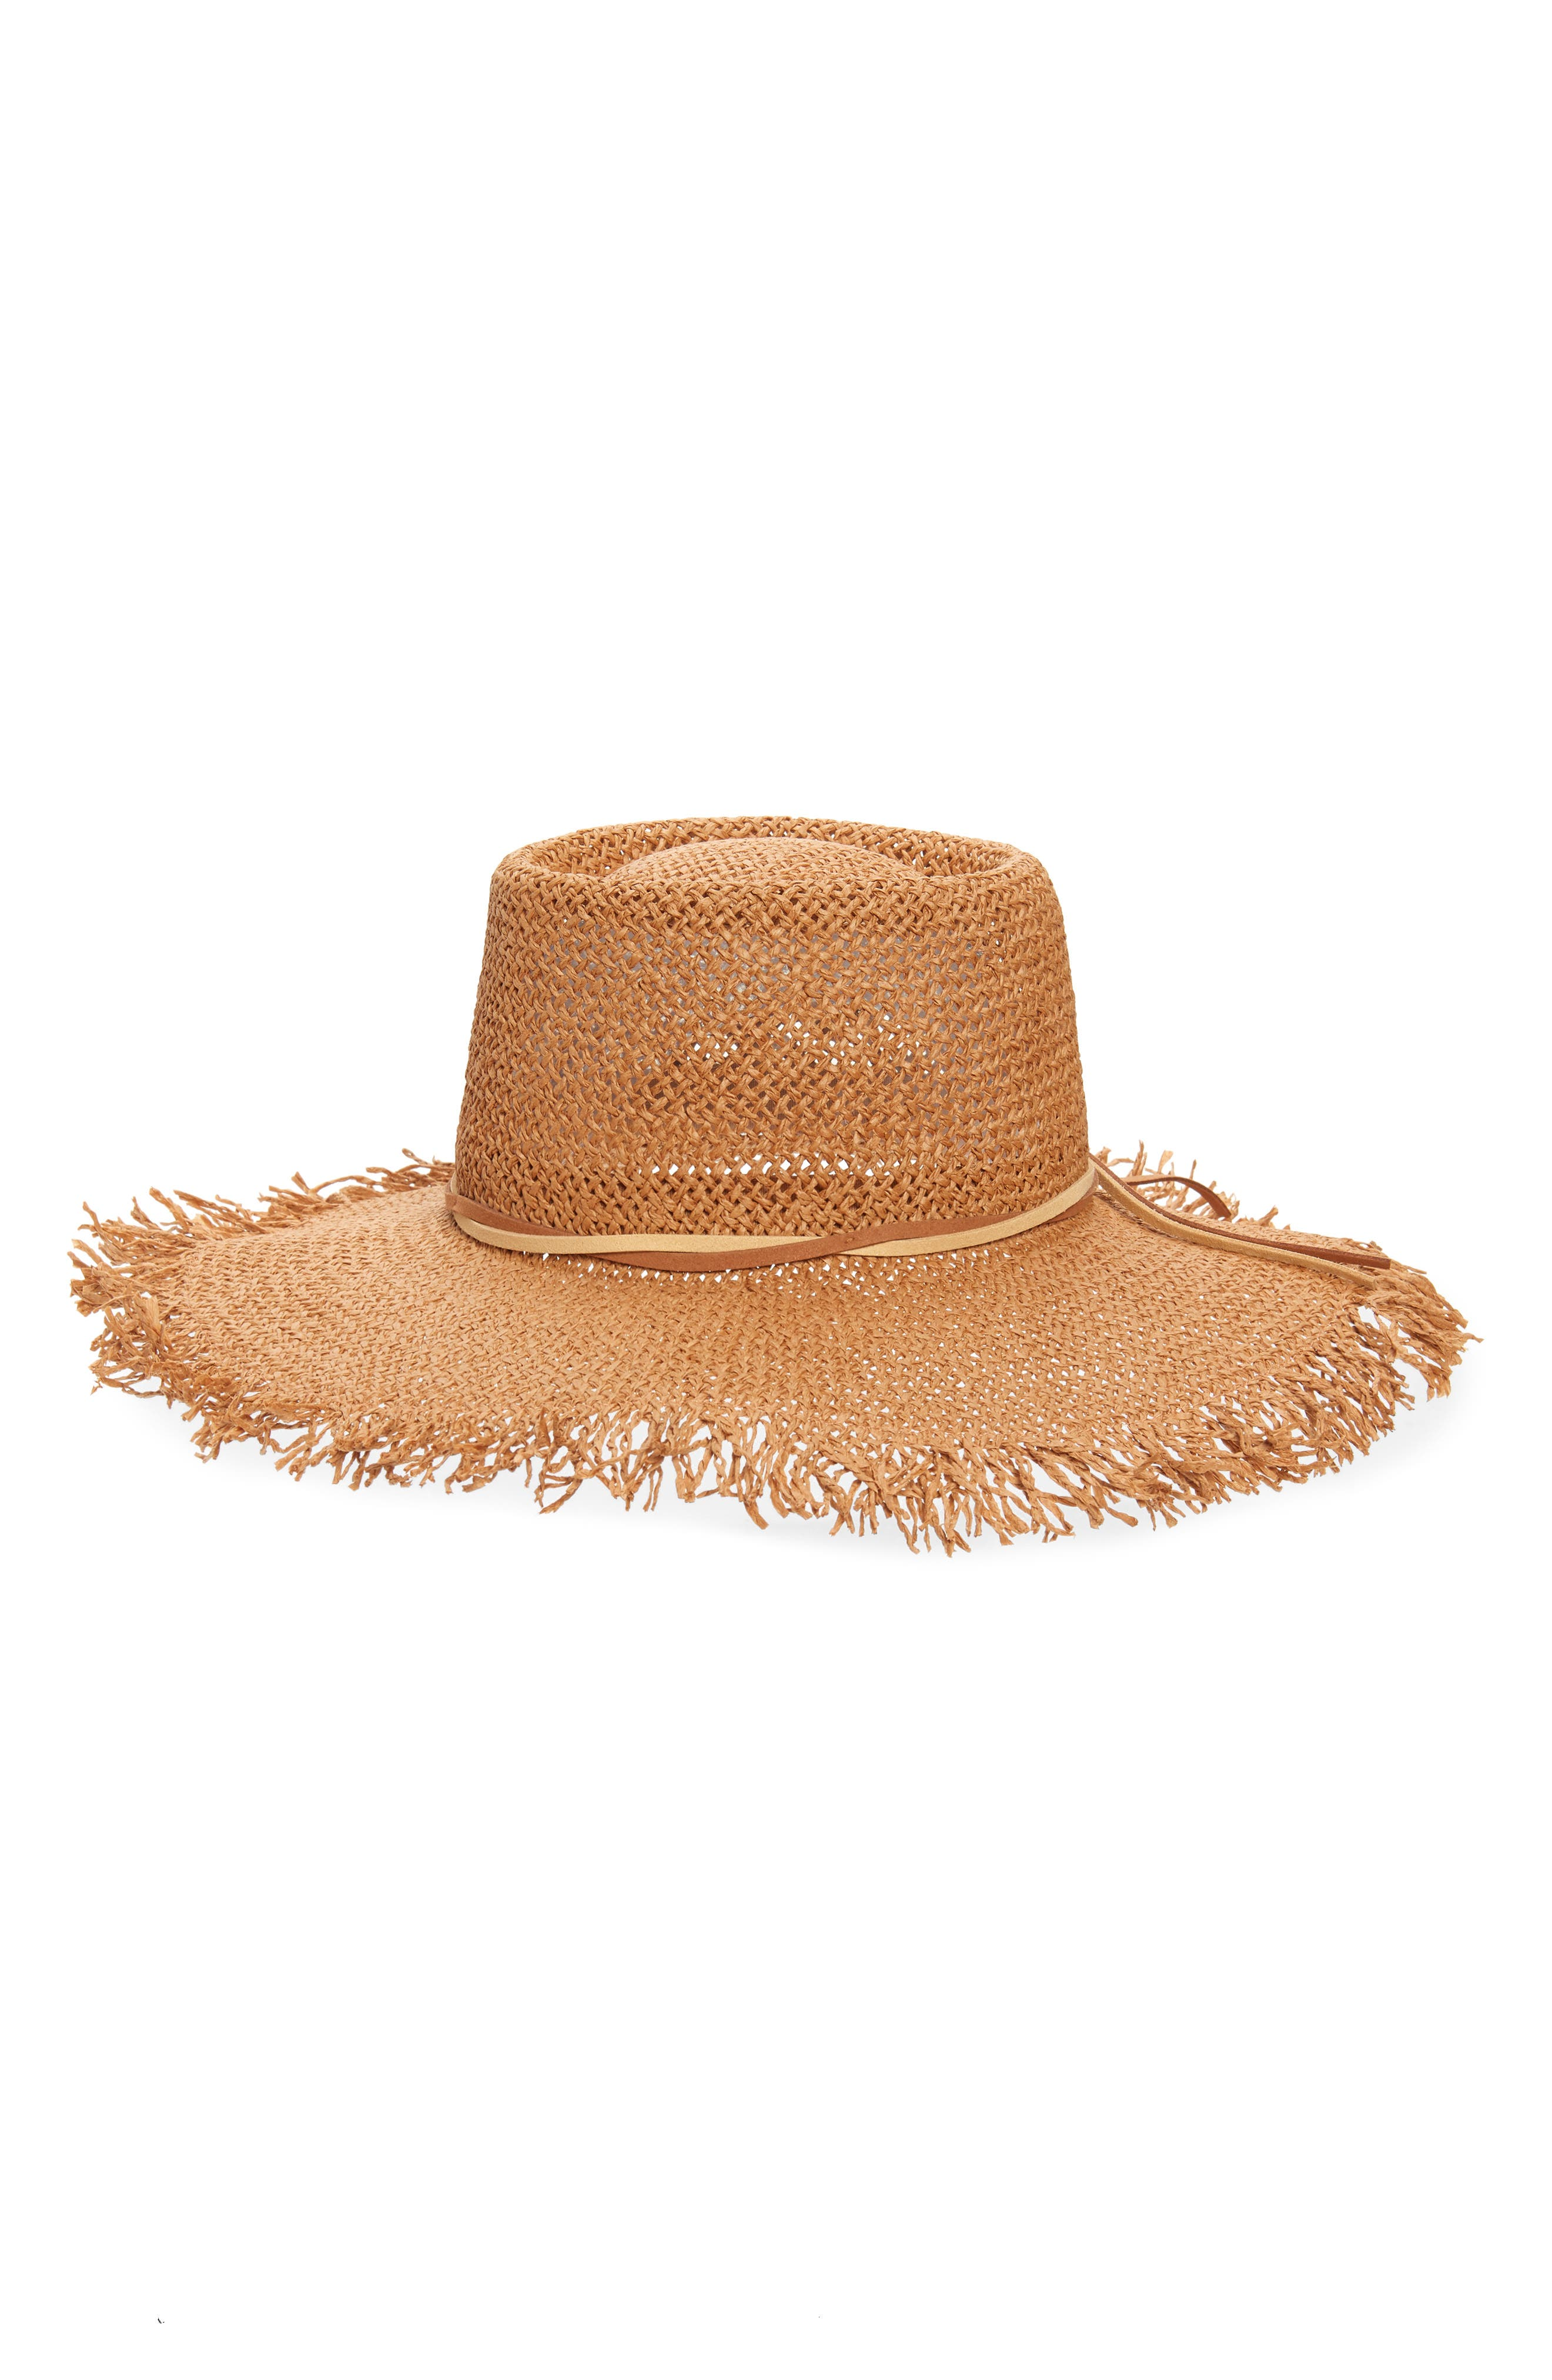 A frayed edge adds a bit of earthy appeal to this classic straw boater hat. When you buy Treasure & Bond, Nordstrom will donate 2.5% of net sales to organizations that work to empower youth. Style Name: Treasure & Bond Straw Boater Hat. Style Number: 5987736. Available in stores.